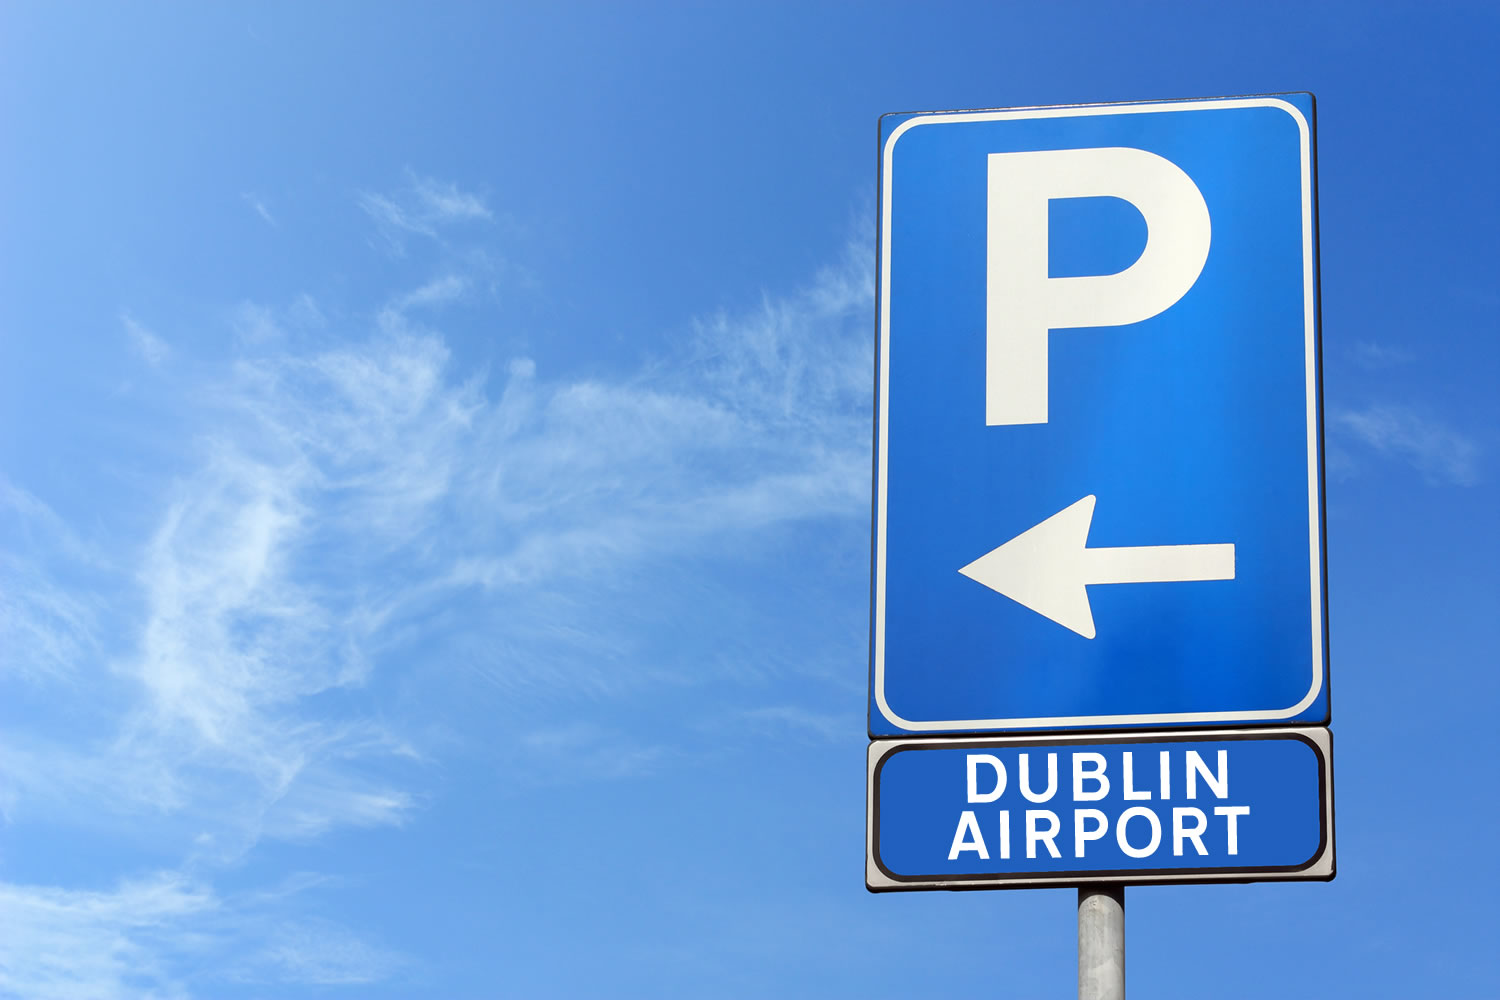 Dublin airport parking quote